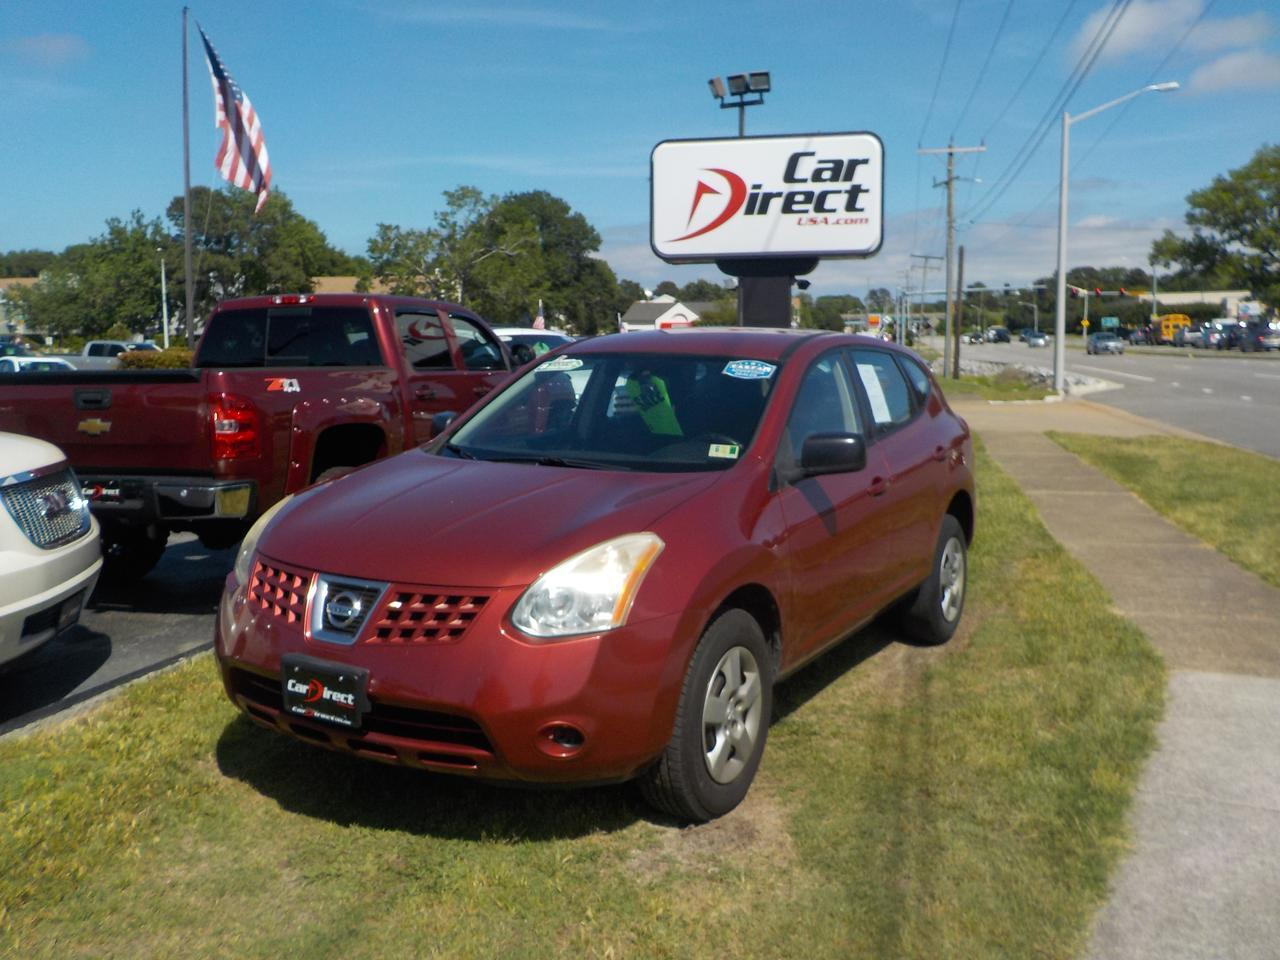 2008 NISSAN ROGUE S, WHOLESALE TO THE PUBLIC AS, GREAT PRICE, GET IT BEFORE IT GOES TO AUCTION AND THE DEALERS DO!!!!